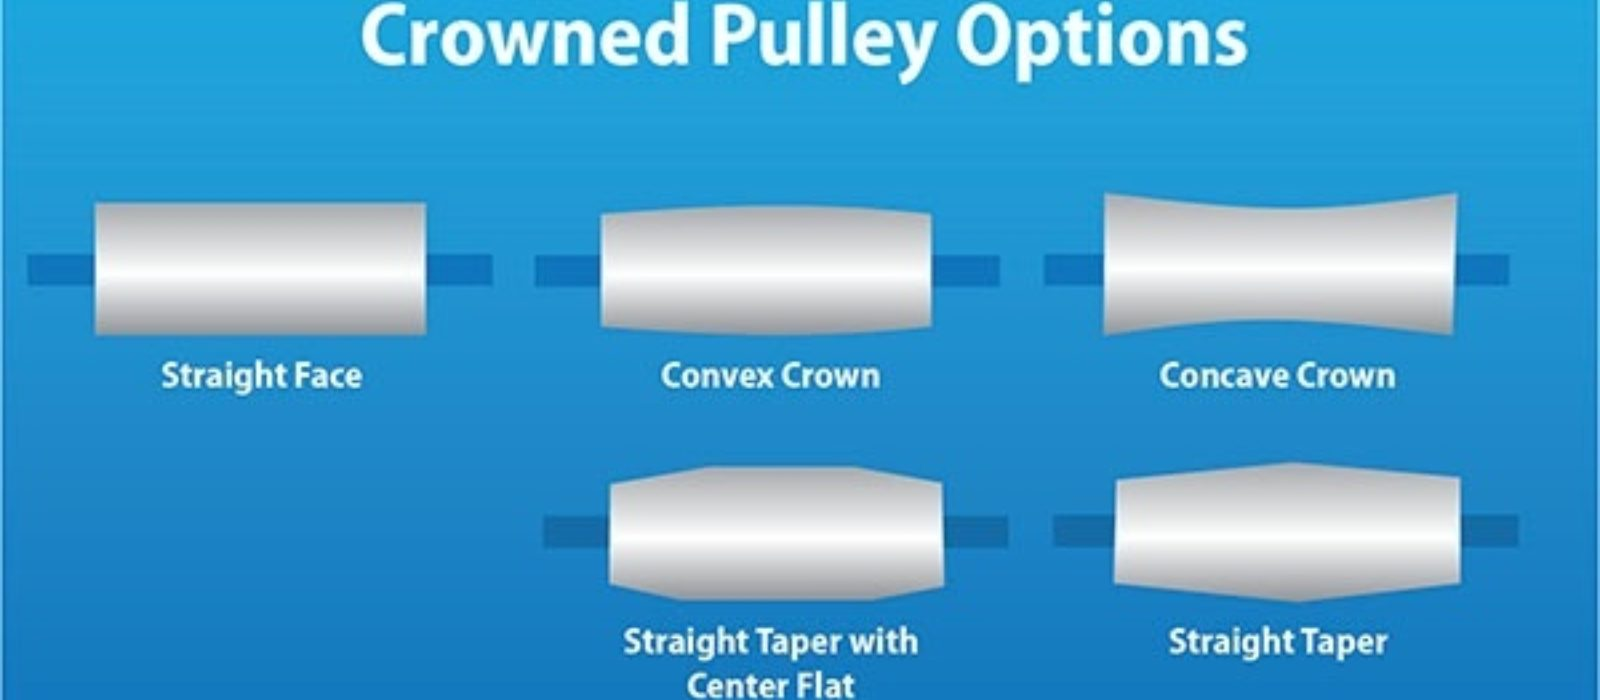 Crowned Pulleys — Which Option is Right for You? | Sparks